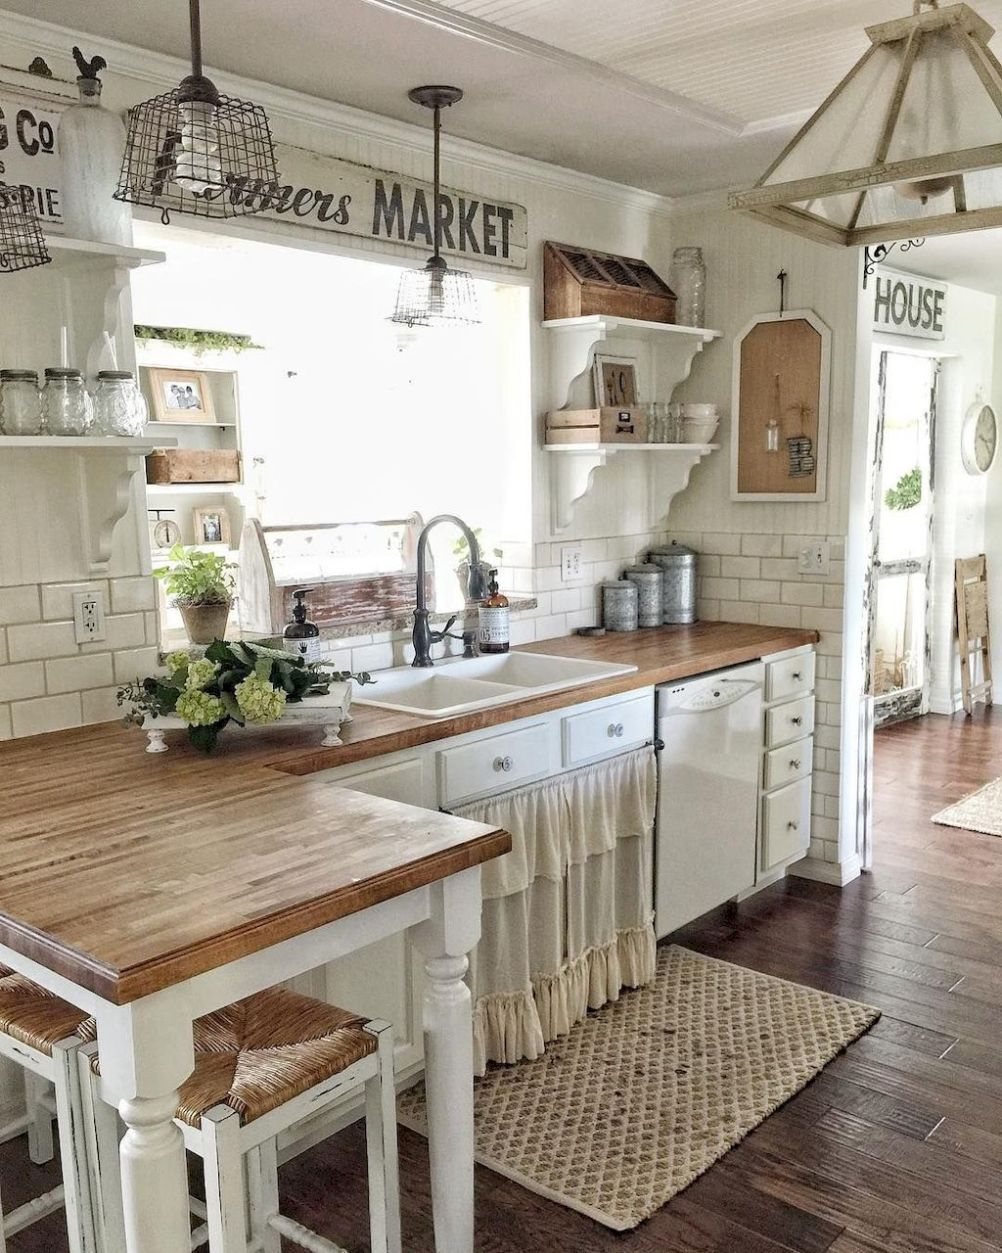 50 Elegant Farmhouse Kitchen Decor Ideas 29 Home Design Ideas